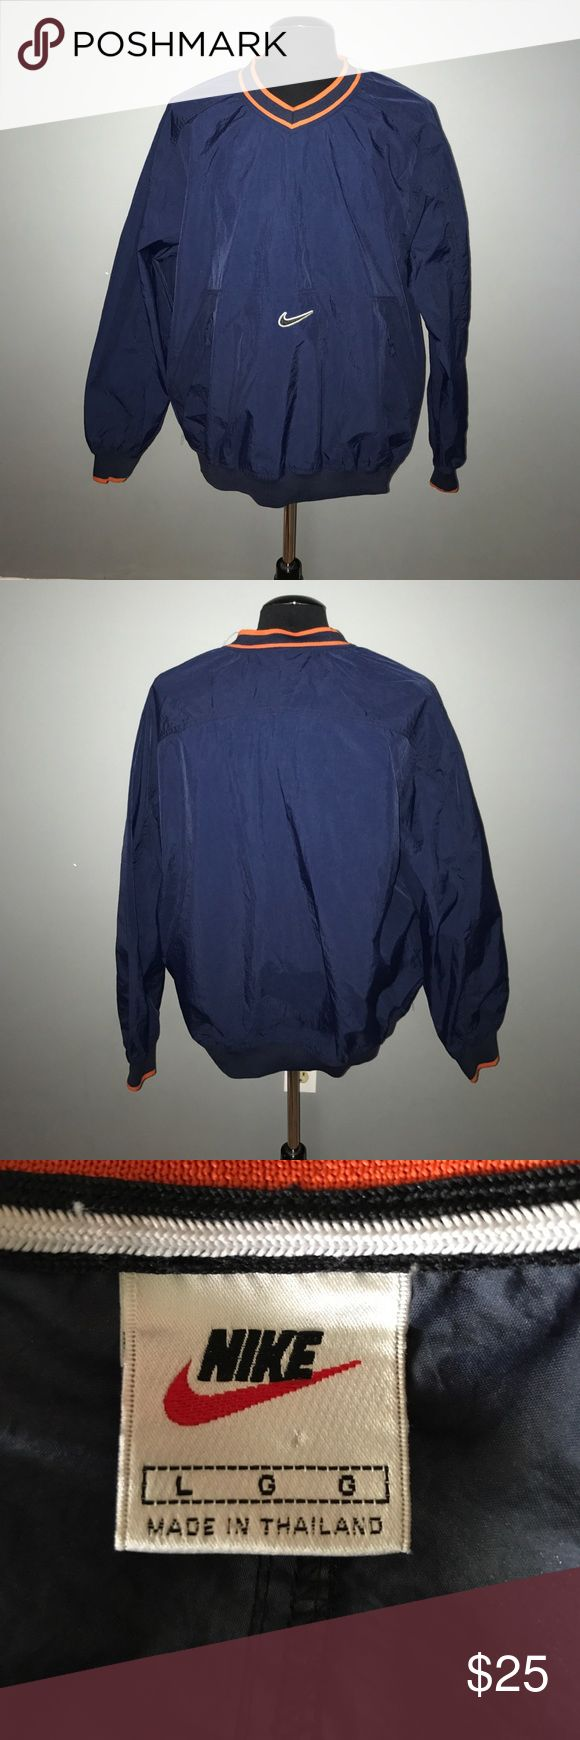 Nike Nylon Navy and Orange Pullover Excellent condition! 2 working zippered pockets in the front. Nike Jackets & Coats Performance Jackets